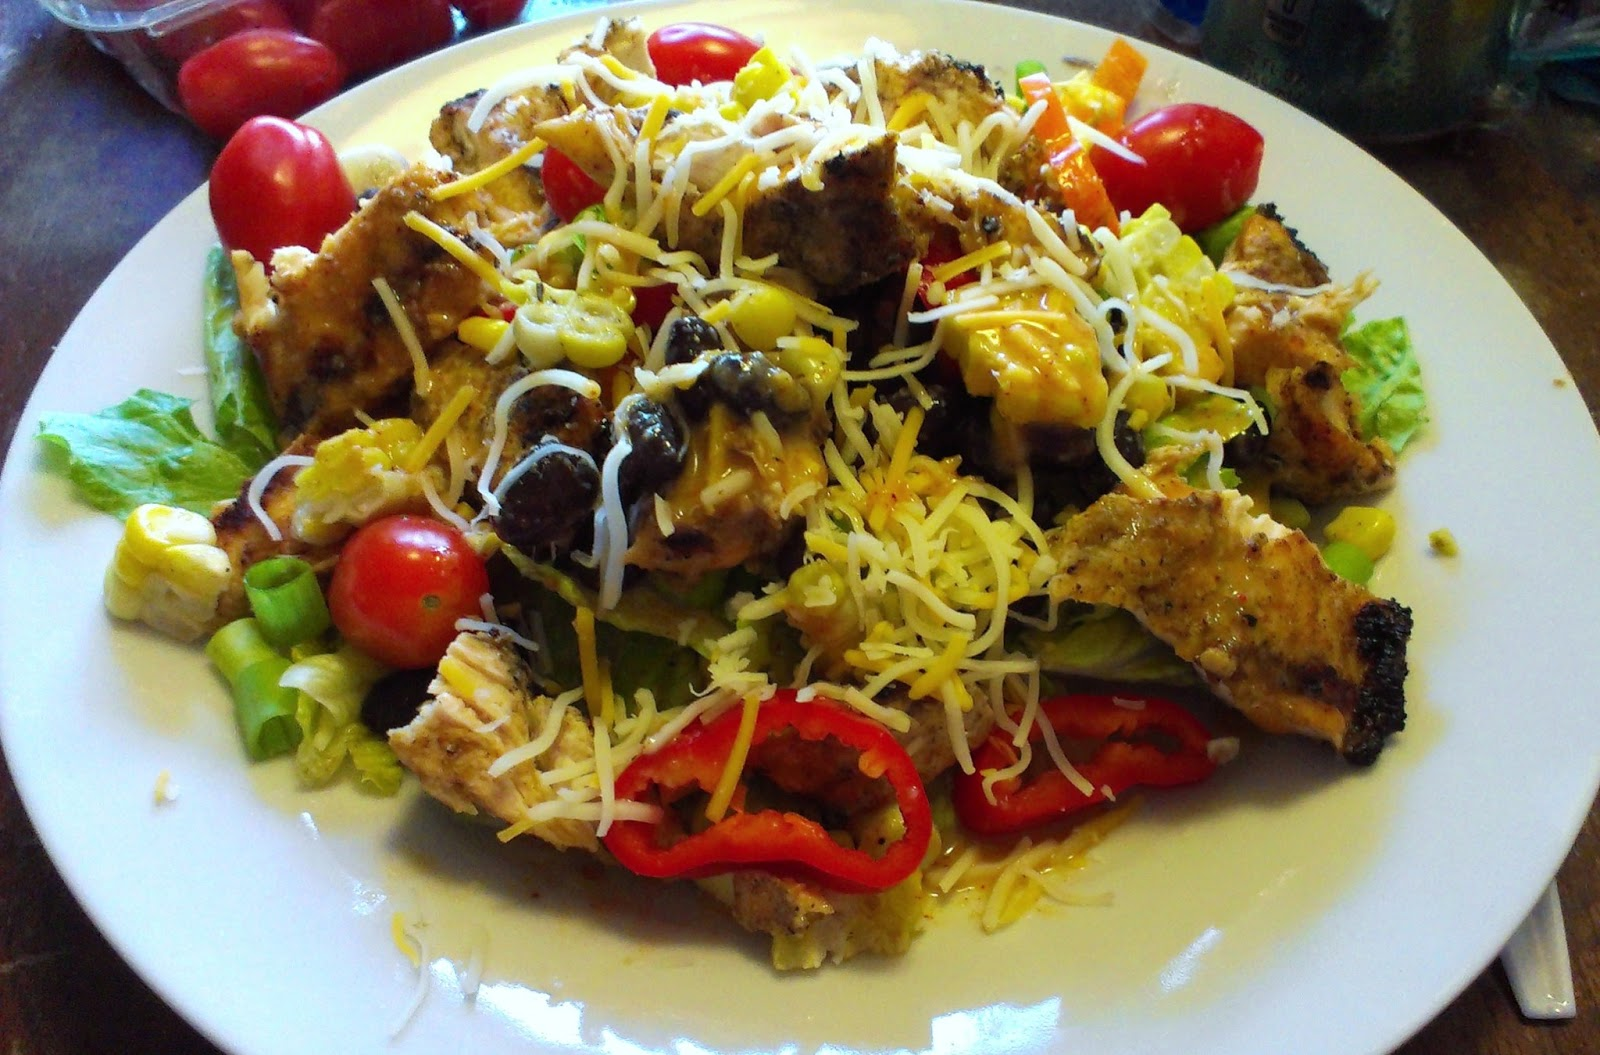 ... for Busy Moms: Santa Fe Grilled Chicken Salad with Chili-Lime Dressing